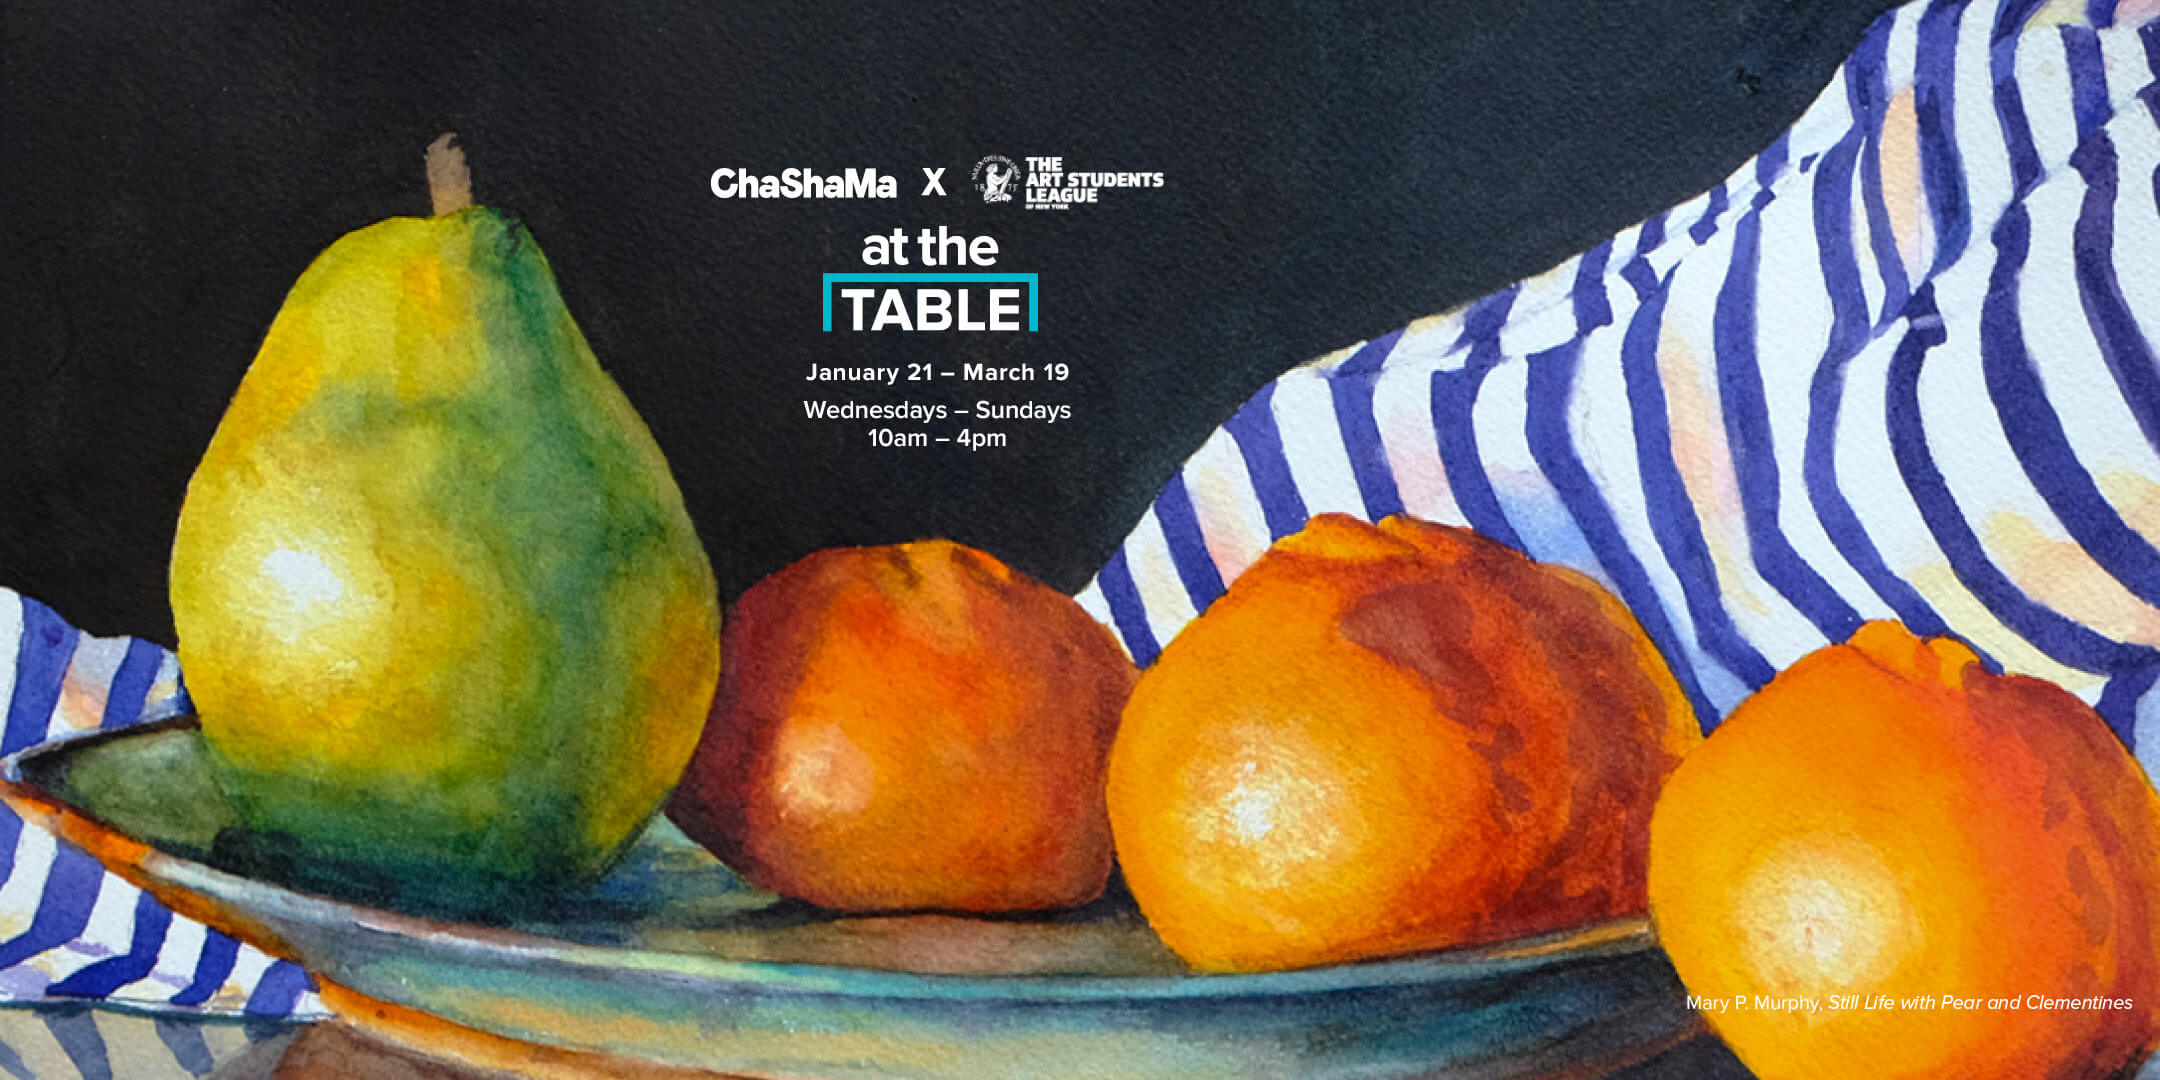 Exhibition Outreach: At The Table